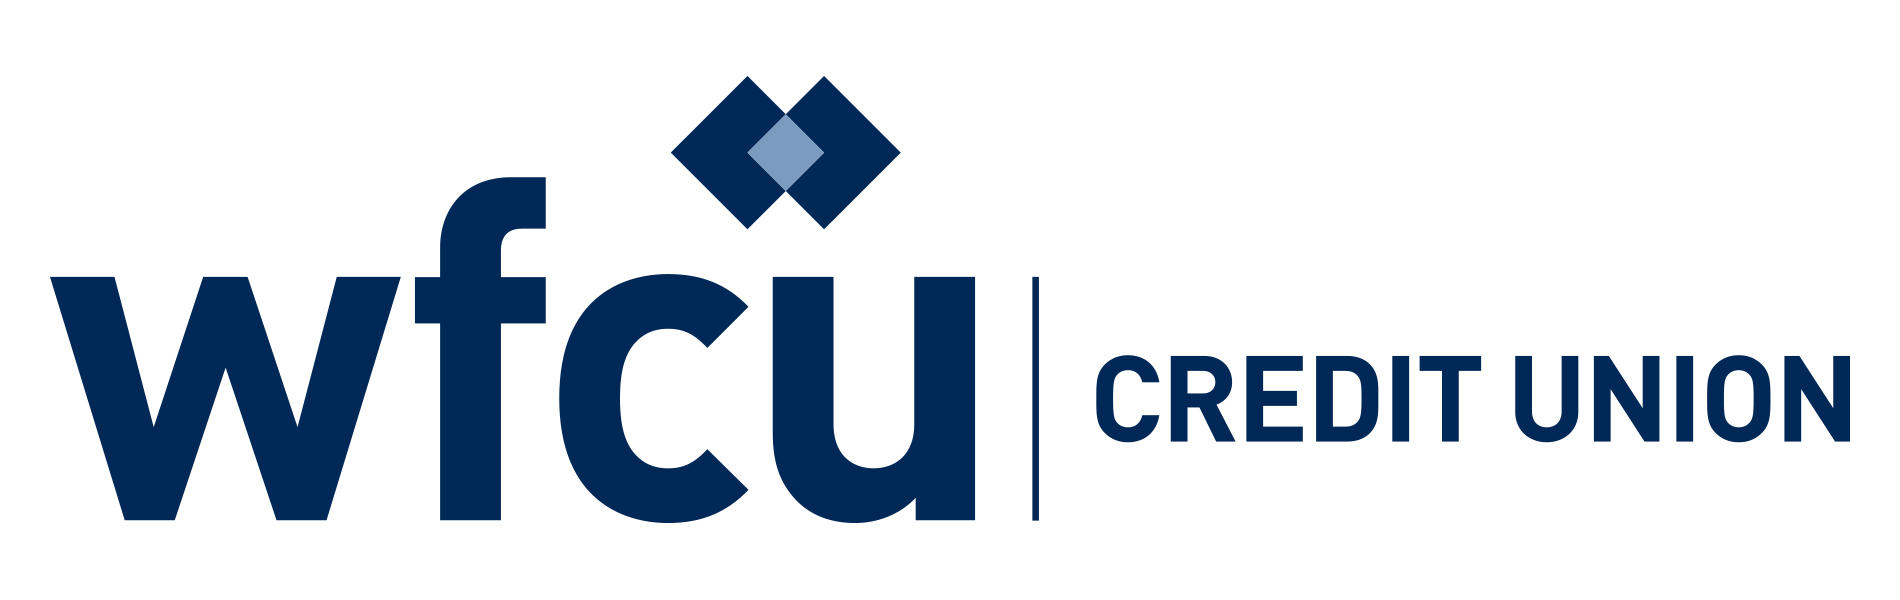 WFCU Credit Union Logo v1